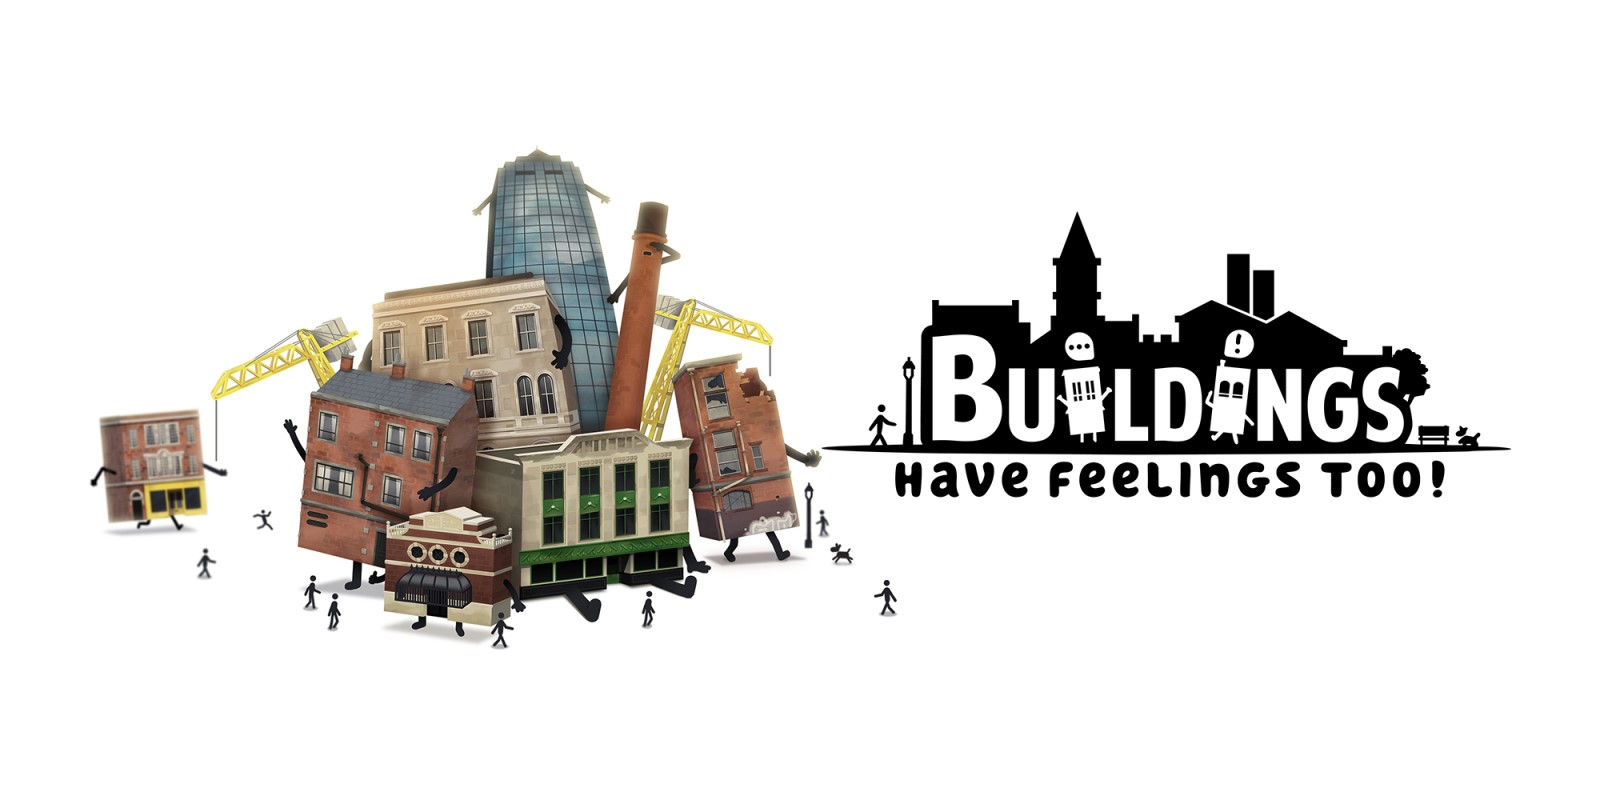 Buildings Have Feelings Too!